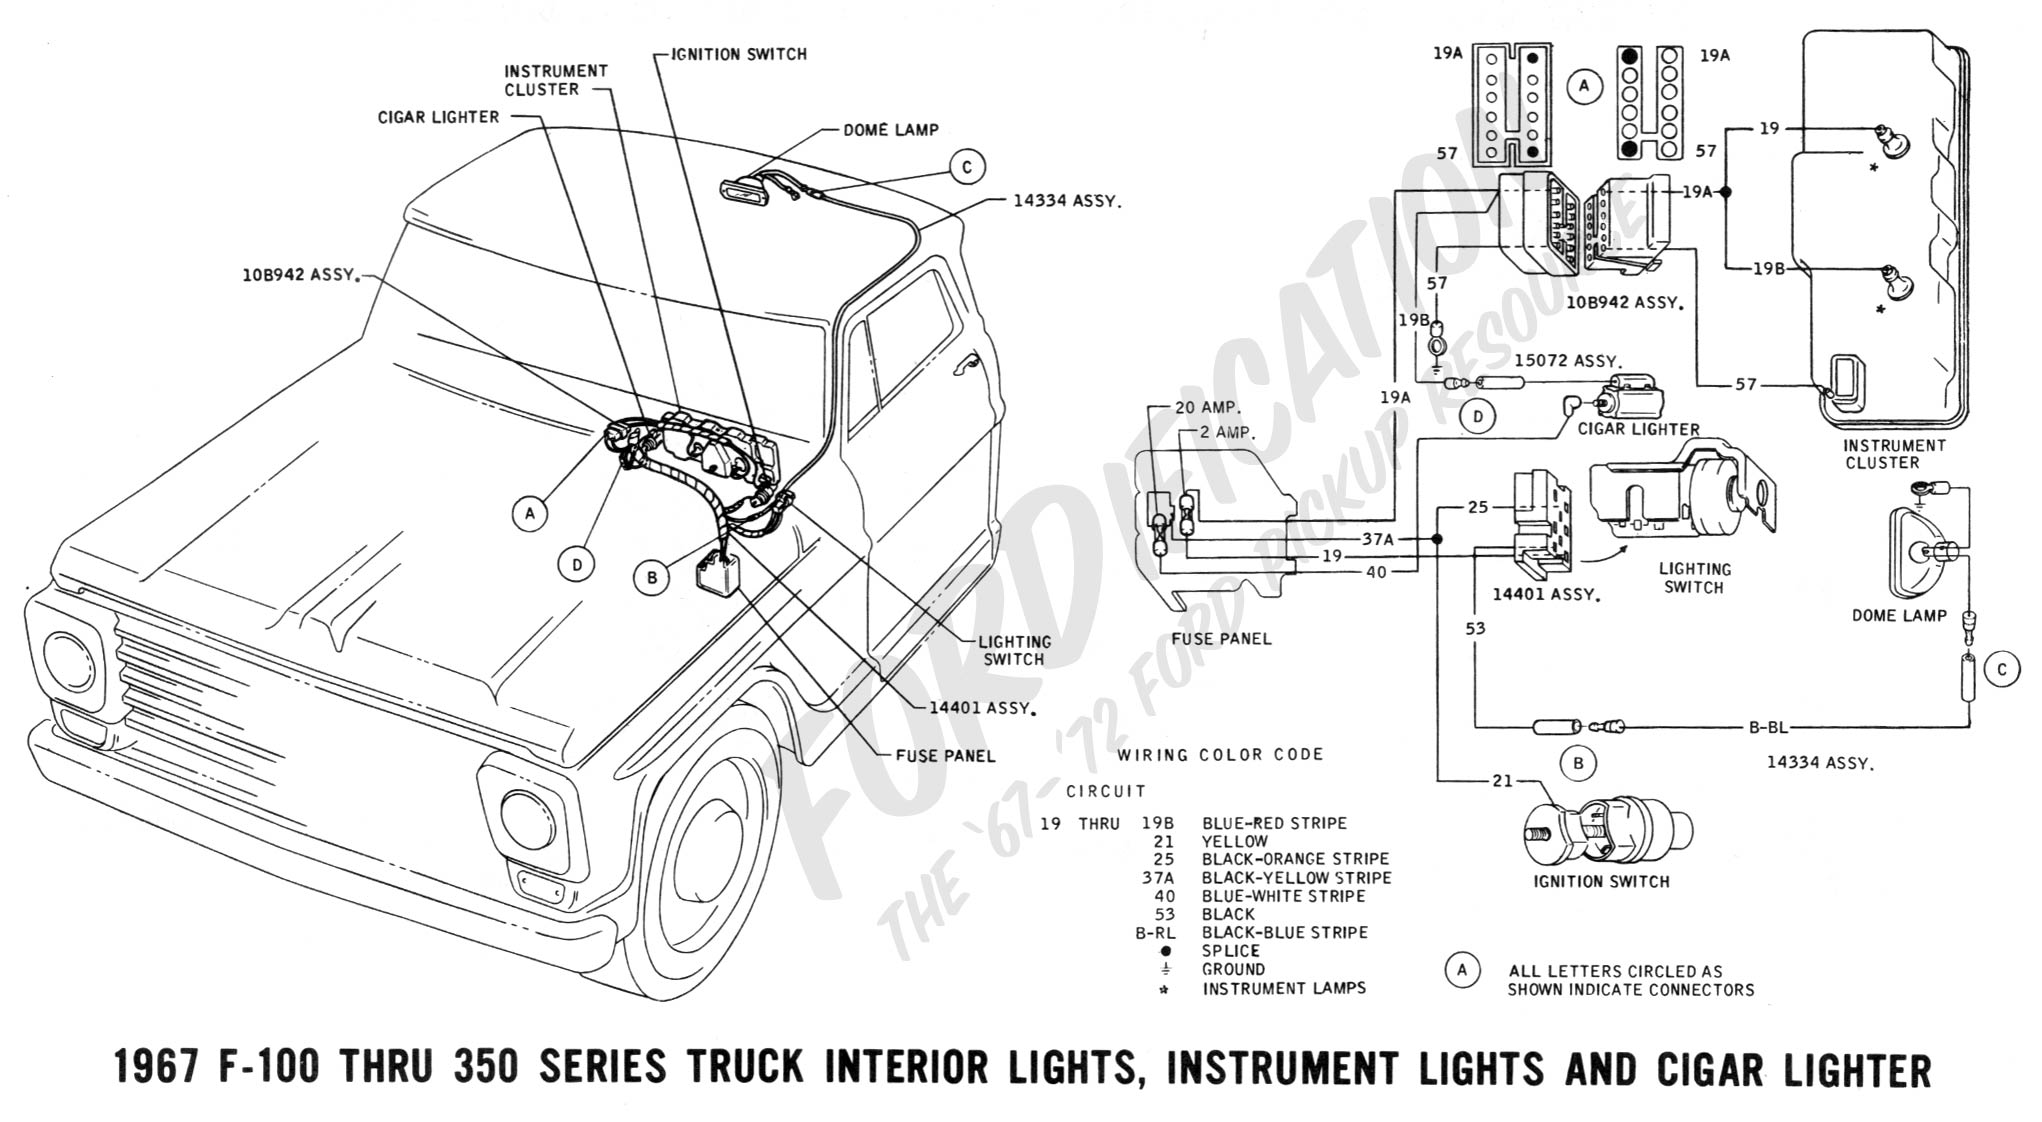 wiring 1967interiorlights wiring diagram for 6 4 ford wipers ford 4 6 engine swap wiring Chevrolet 350 Wiring Diagram at panicattacktreatment.co